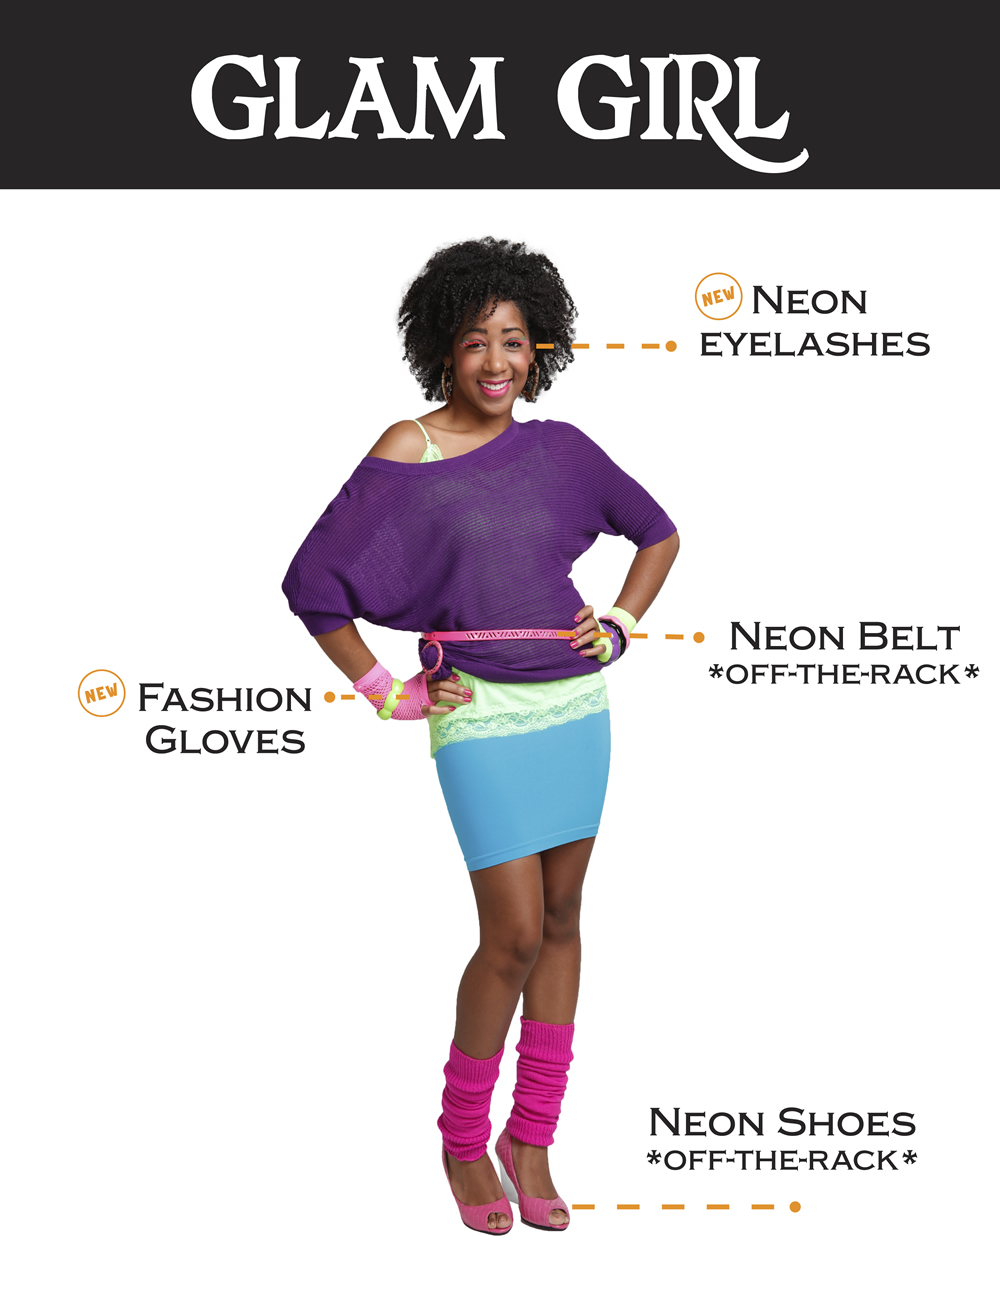 Glam Girl: neon eyelashes, neon belt, fashion gloves, neon shoes